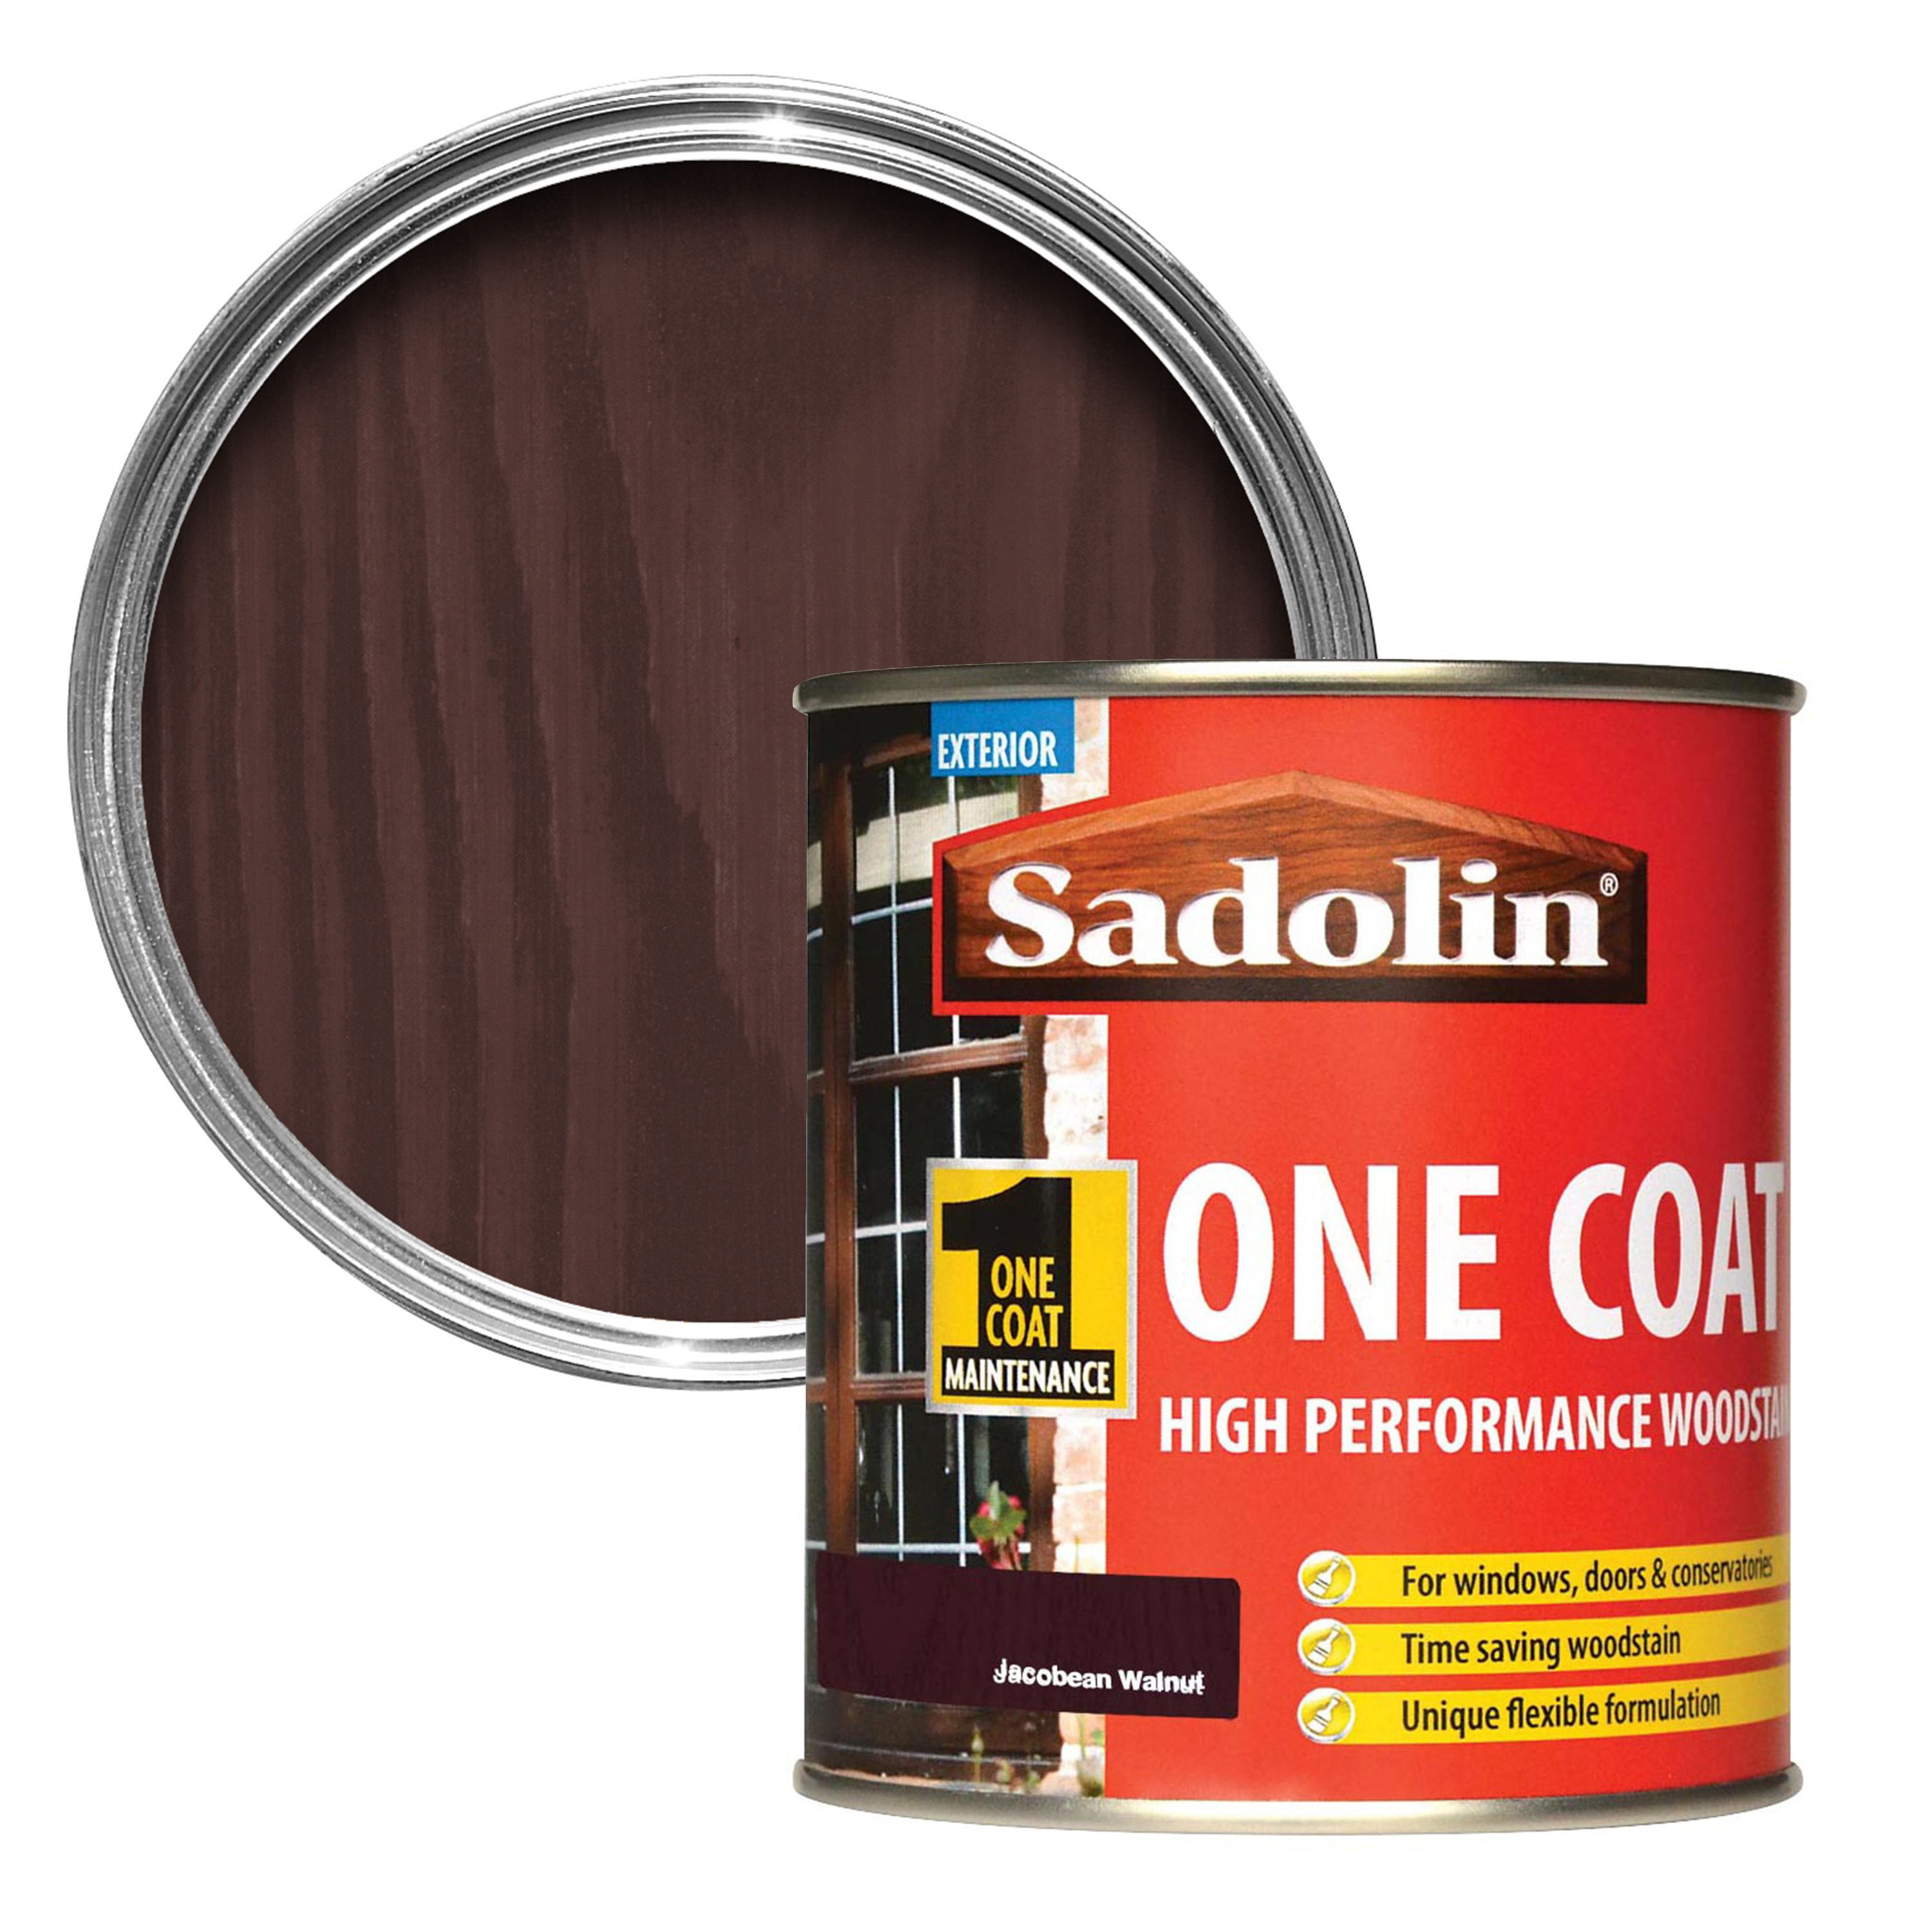 Sadolin jacobean walnut semi gloss wood stain 500ml departments tradepoint - Sadolin exterior wood paint image ...